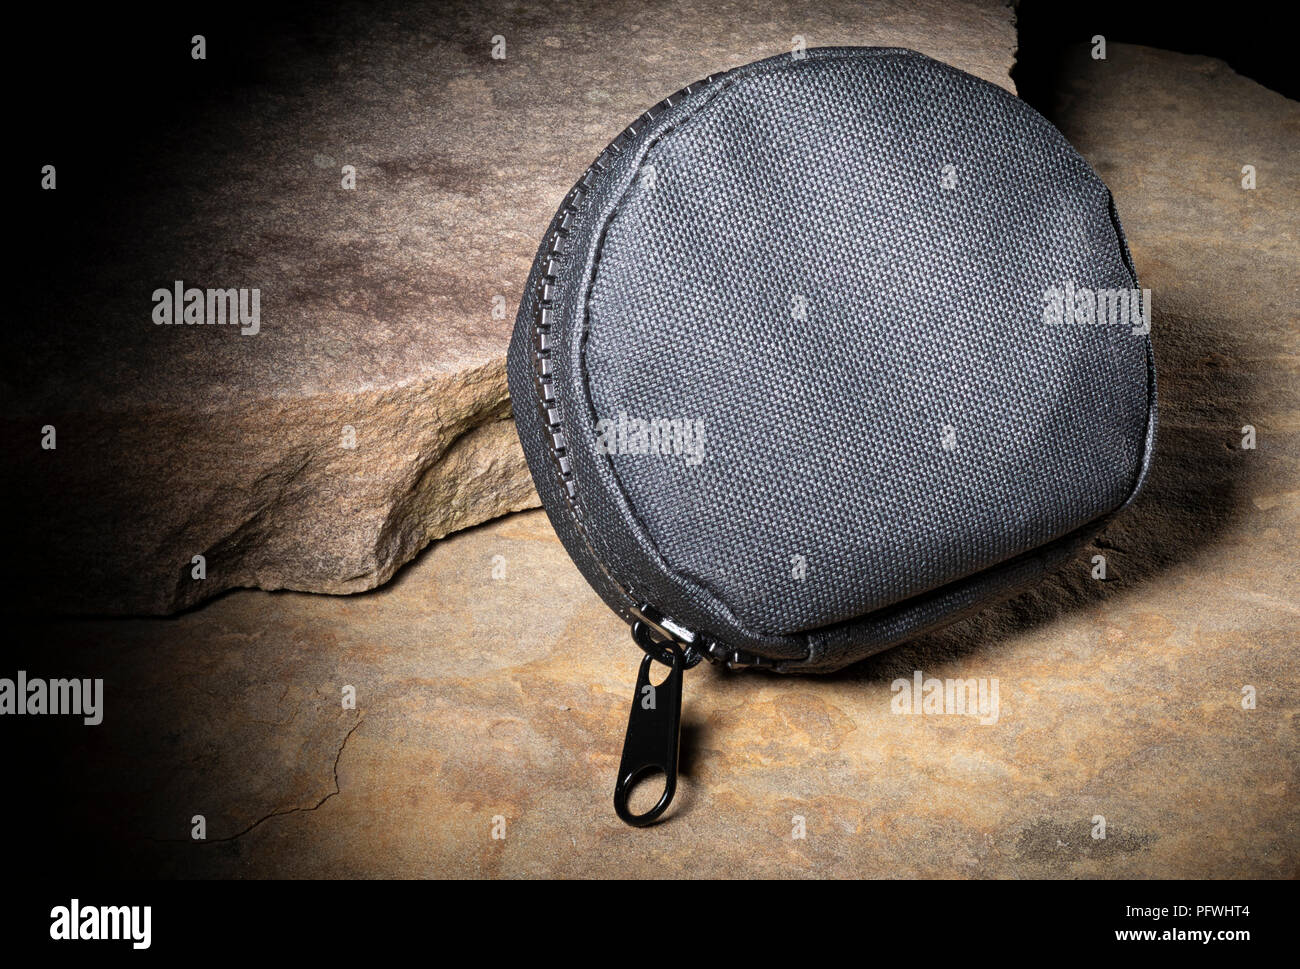 Black zippered tactical cleaning pouch on two rocks - Stock Image